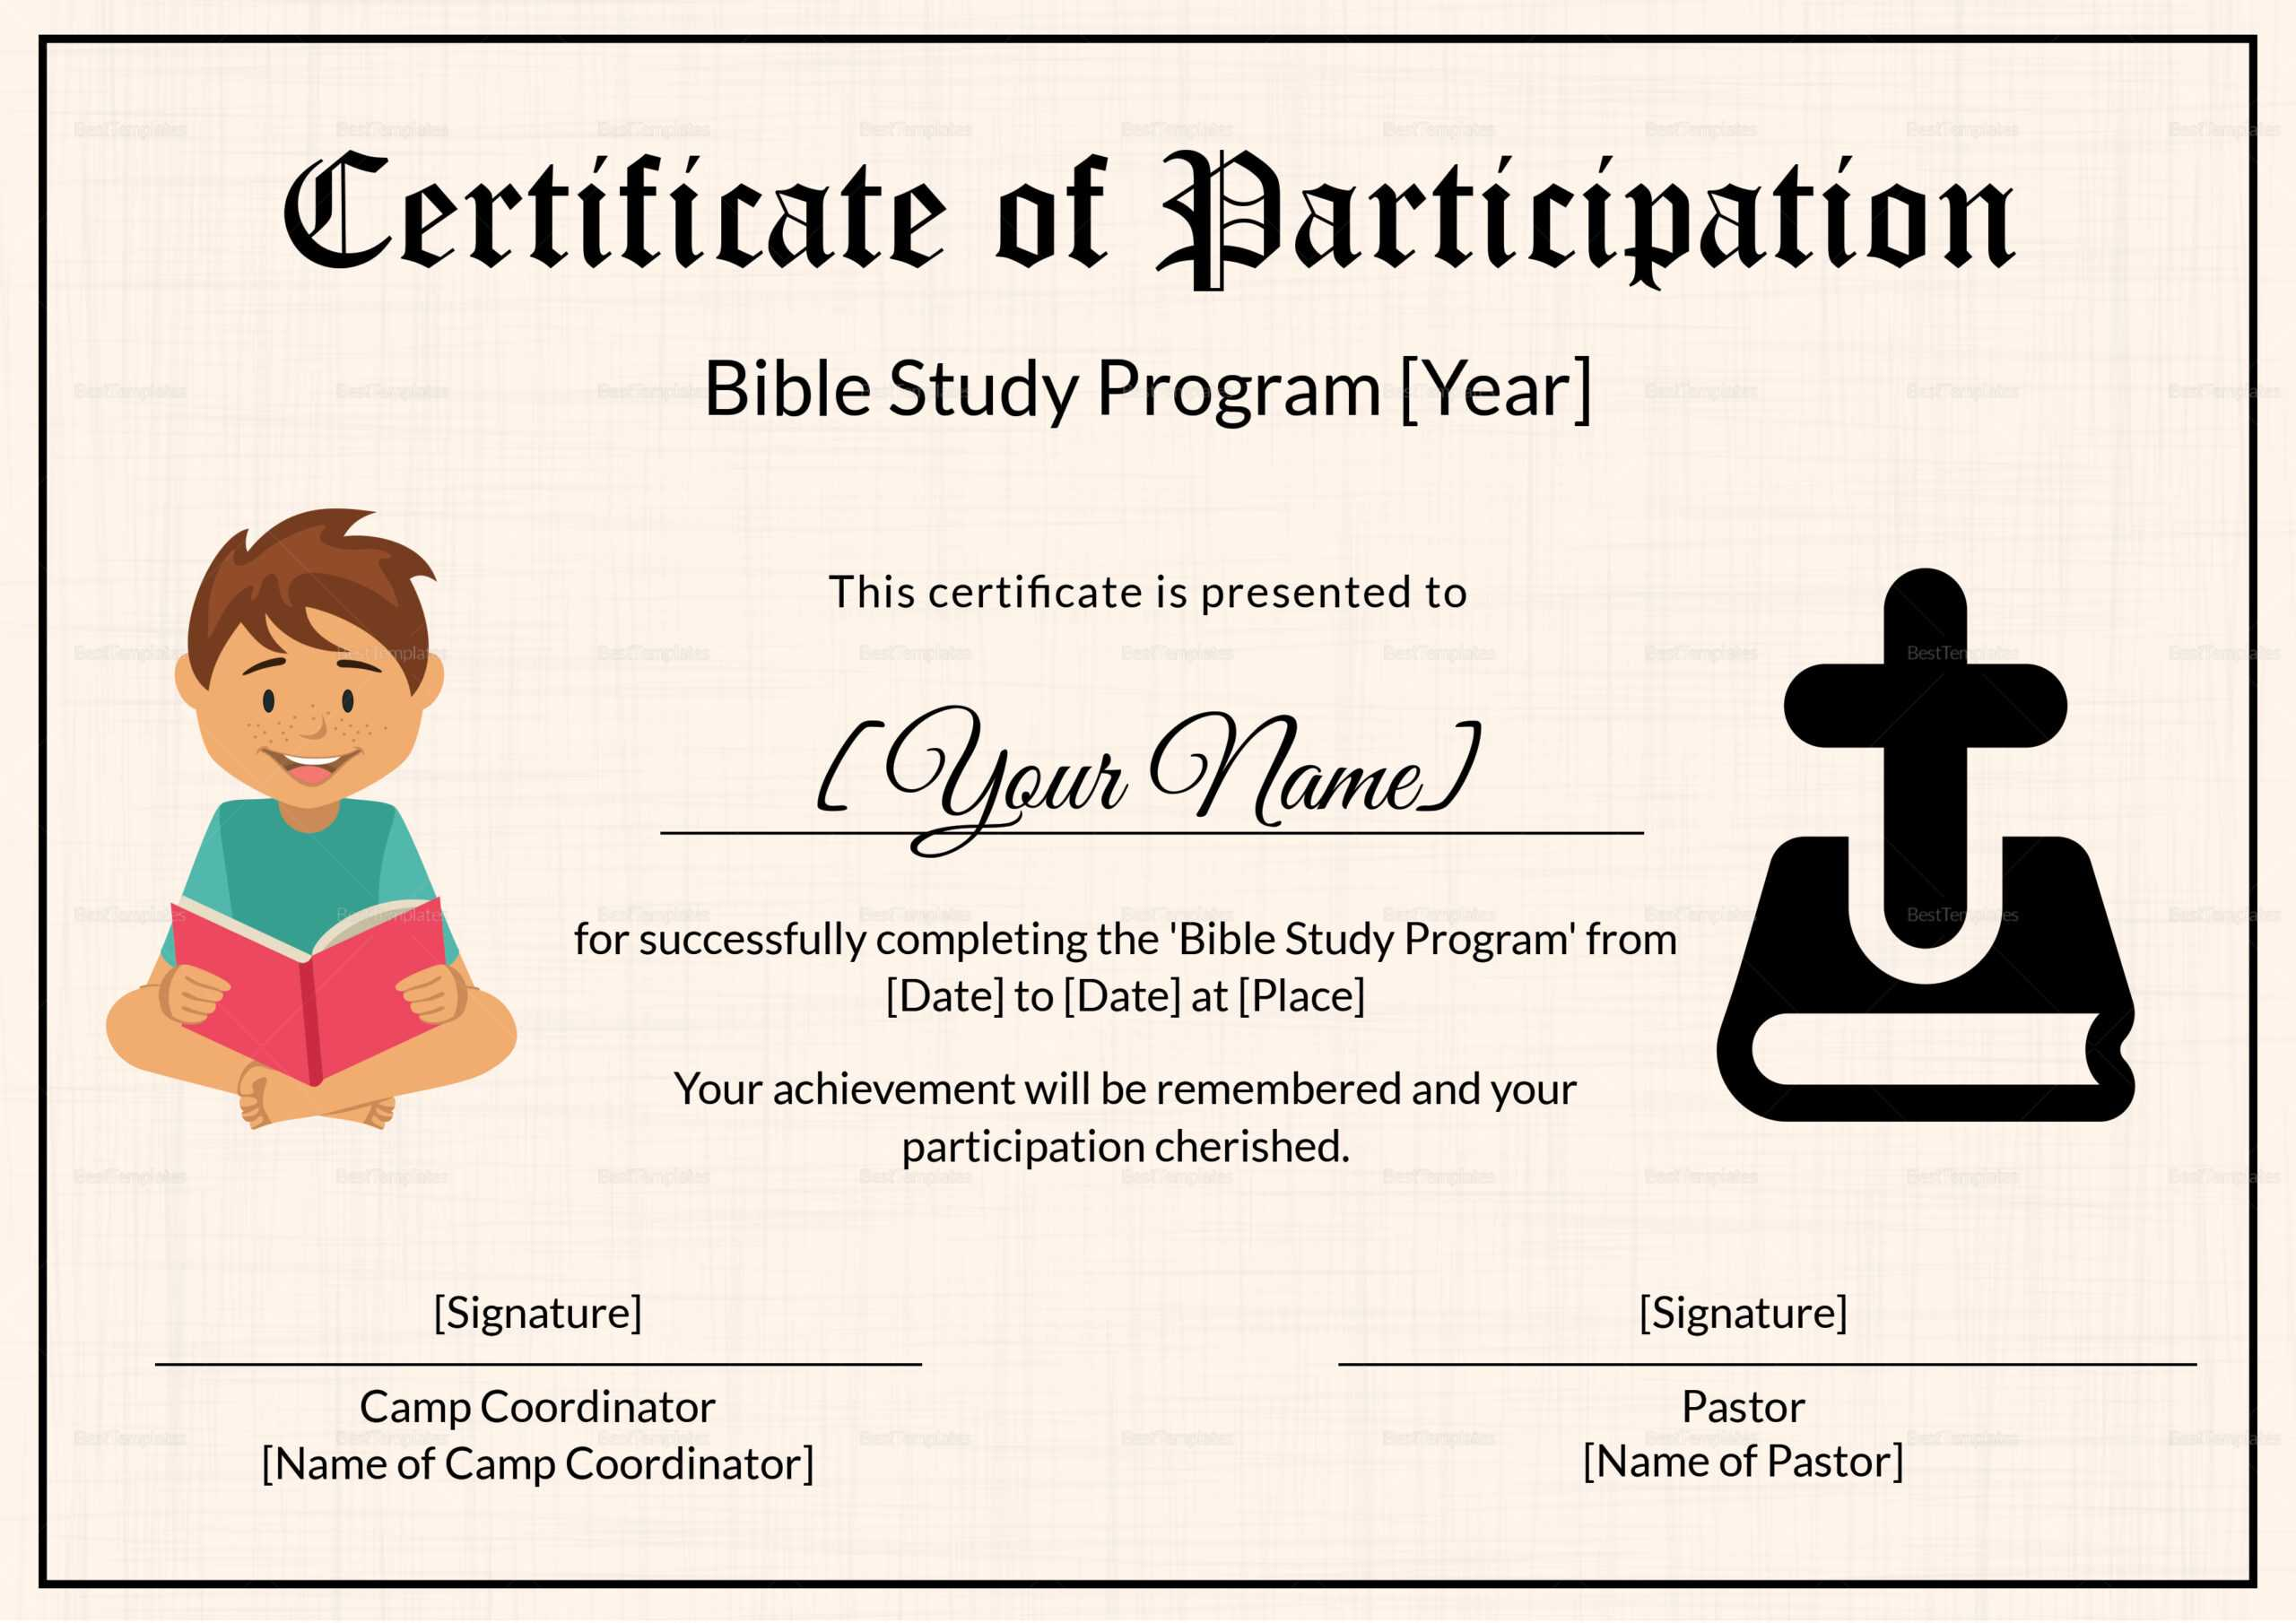 Bible Prophecy Program Certificate For Kids Template With Christian Certificate Template